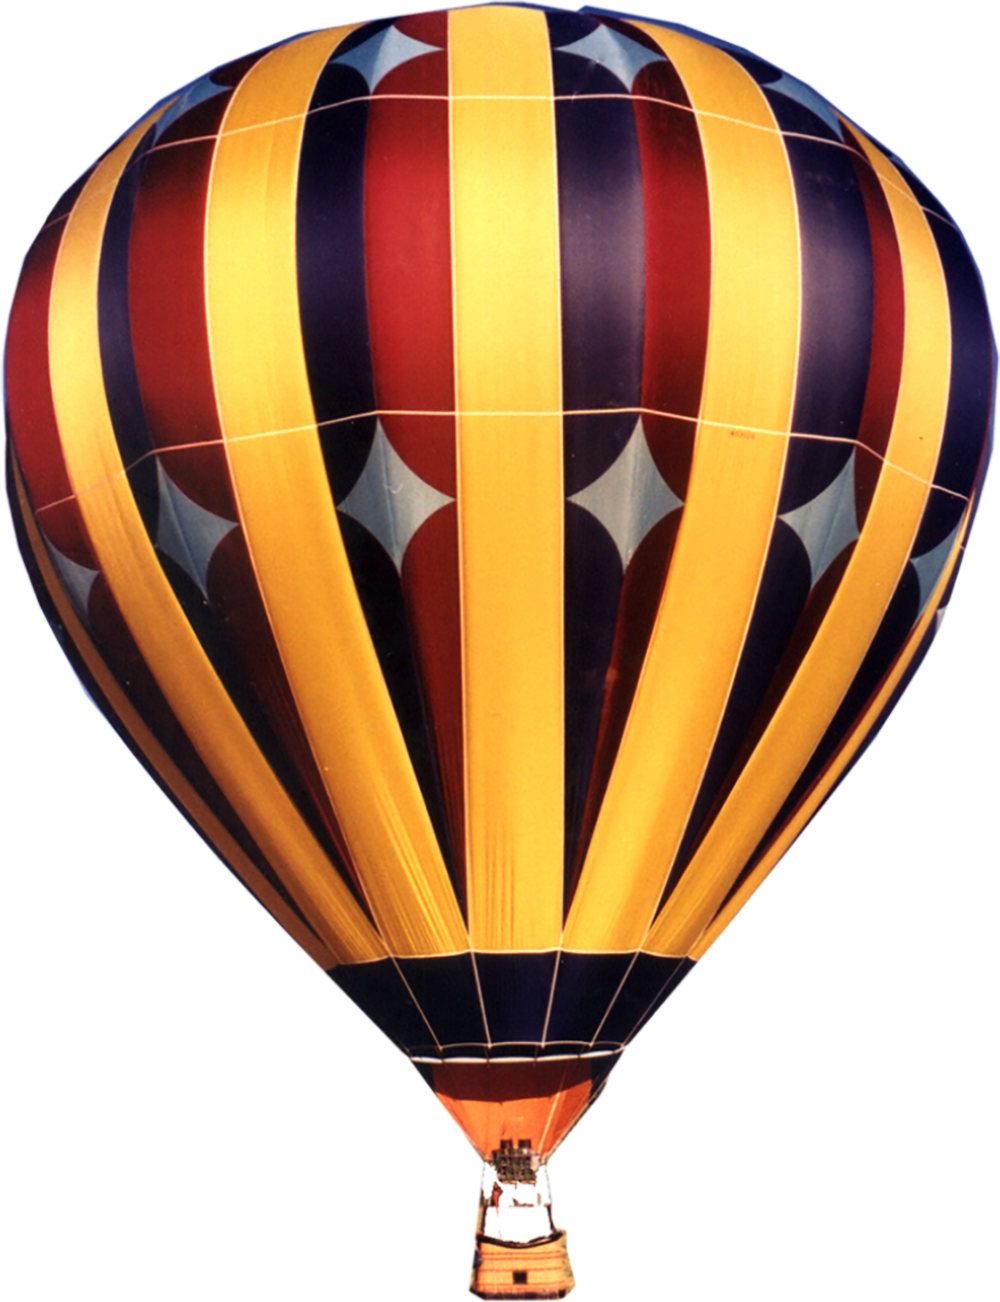 Image - Entourage - Air Balloon 8